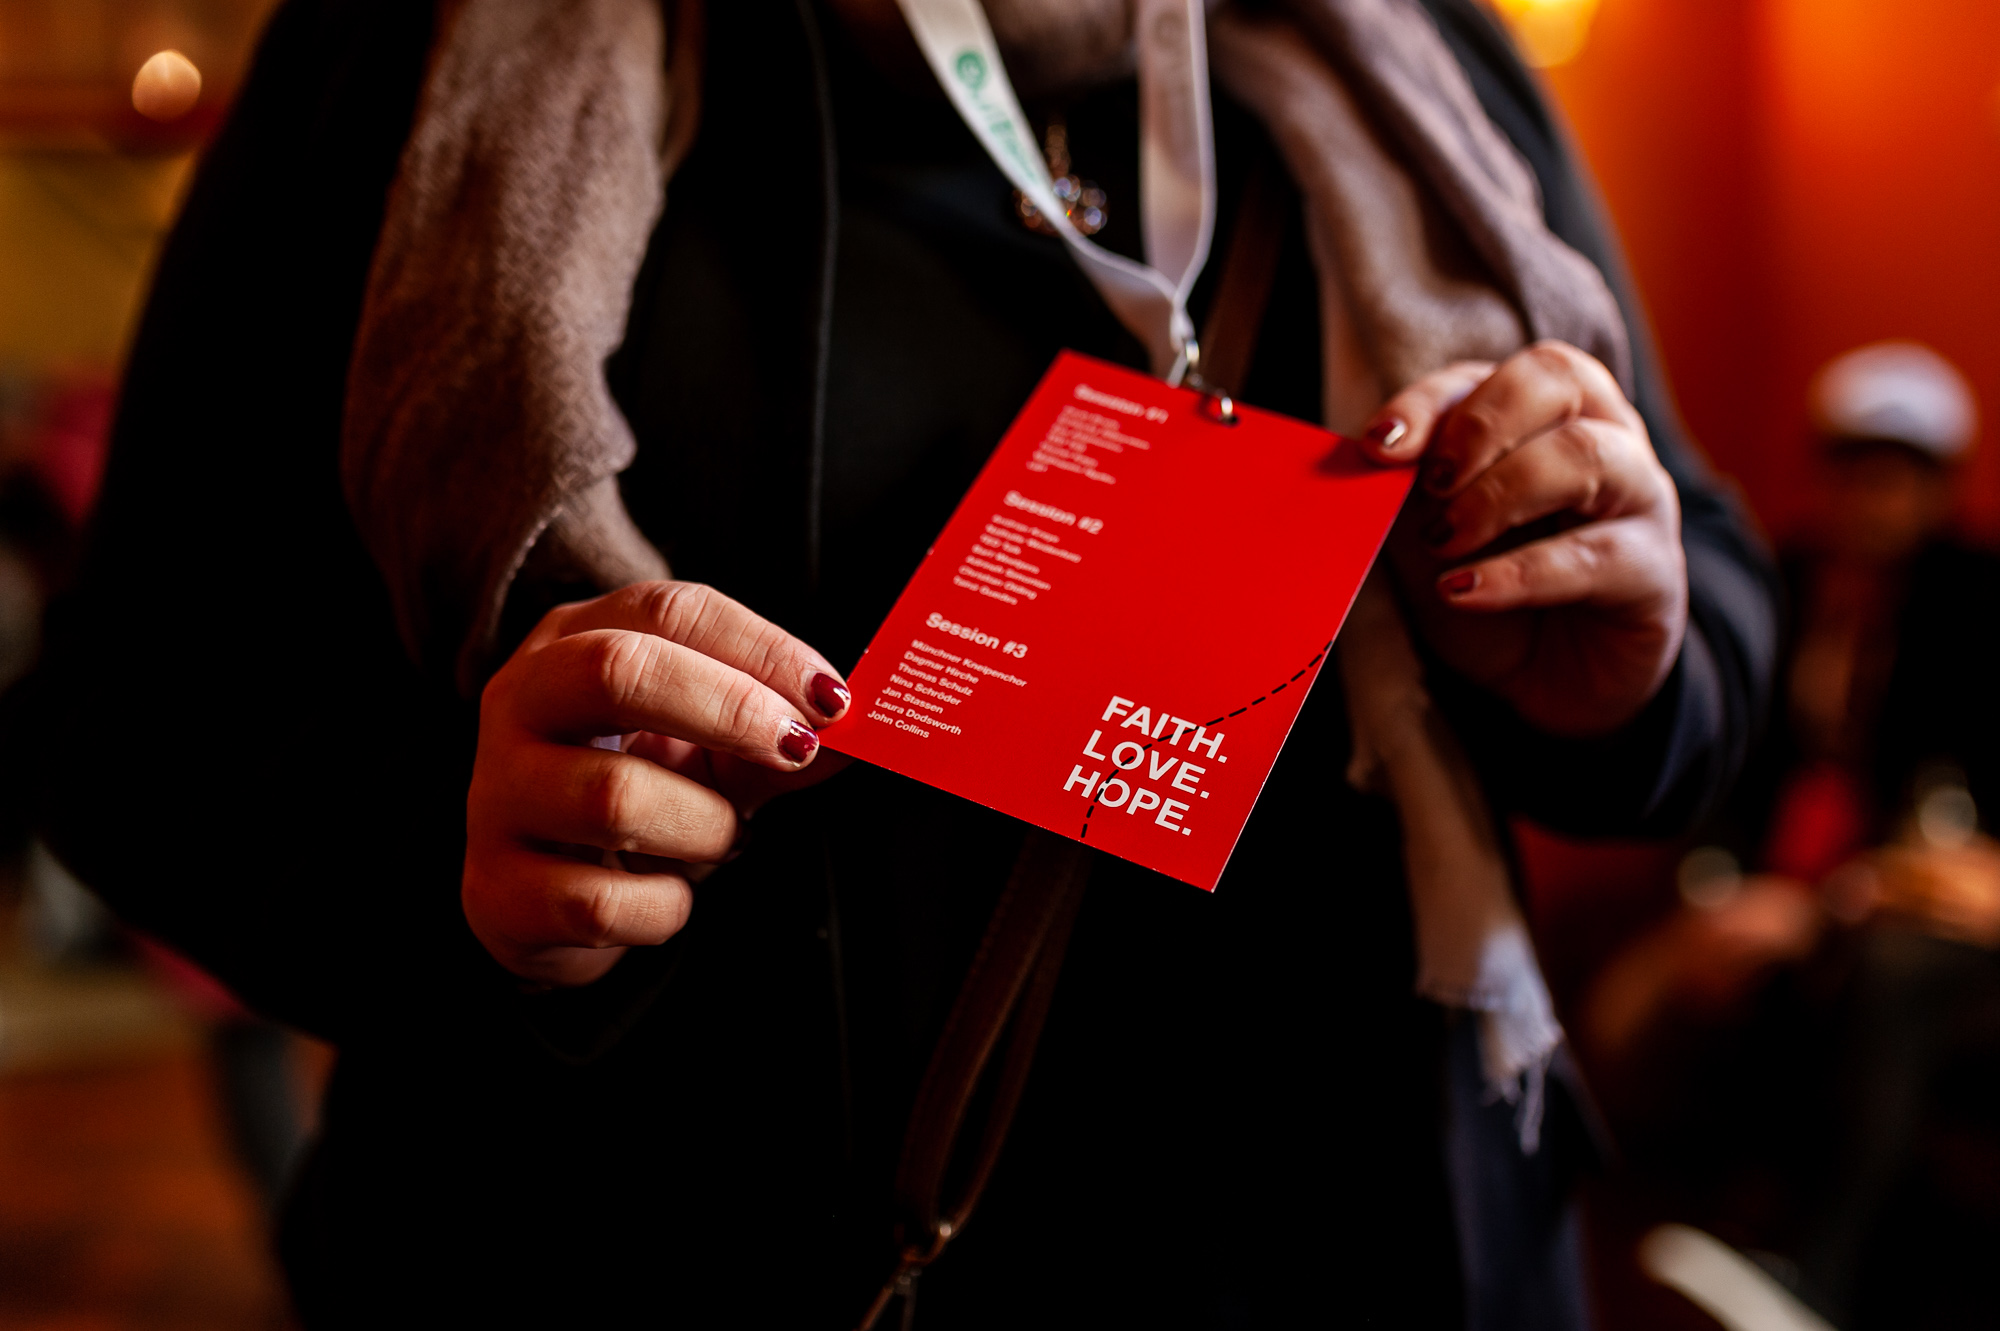 TEDx München 2018, a guest holding a badge, photo by Denise Stock